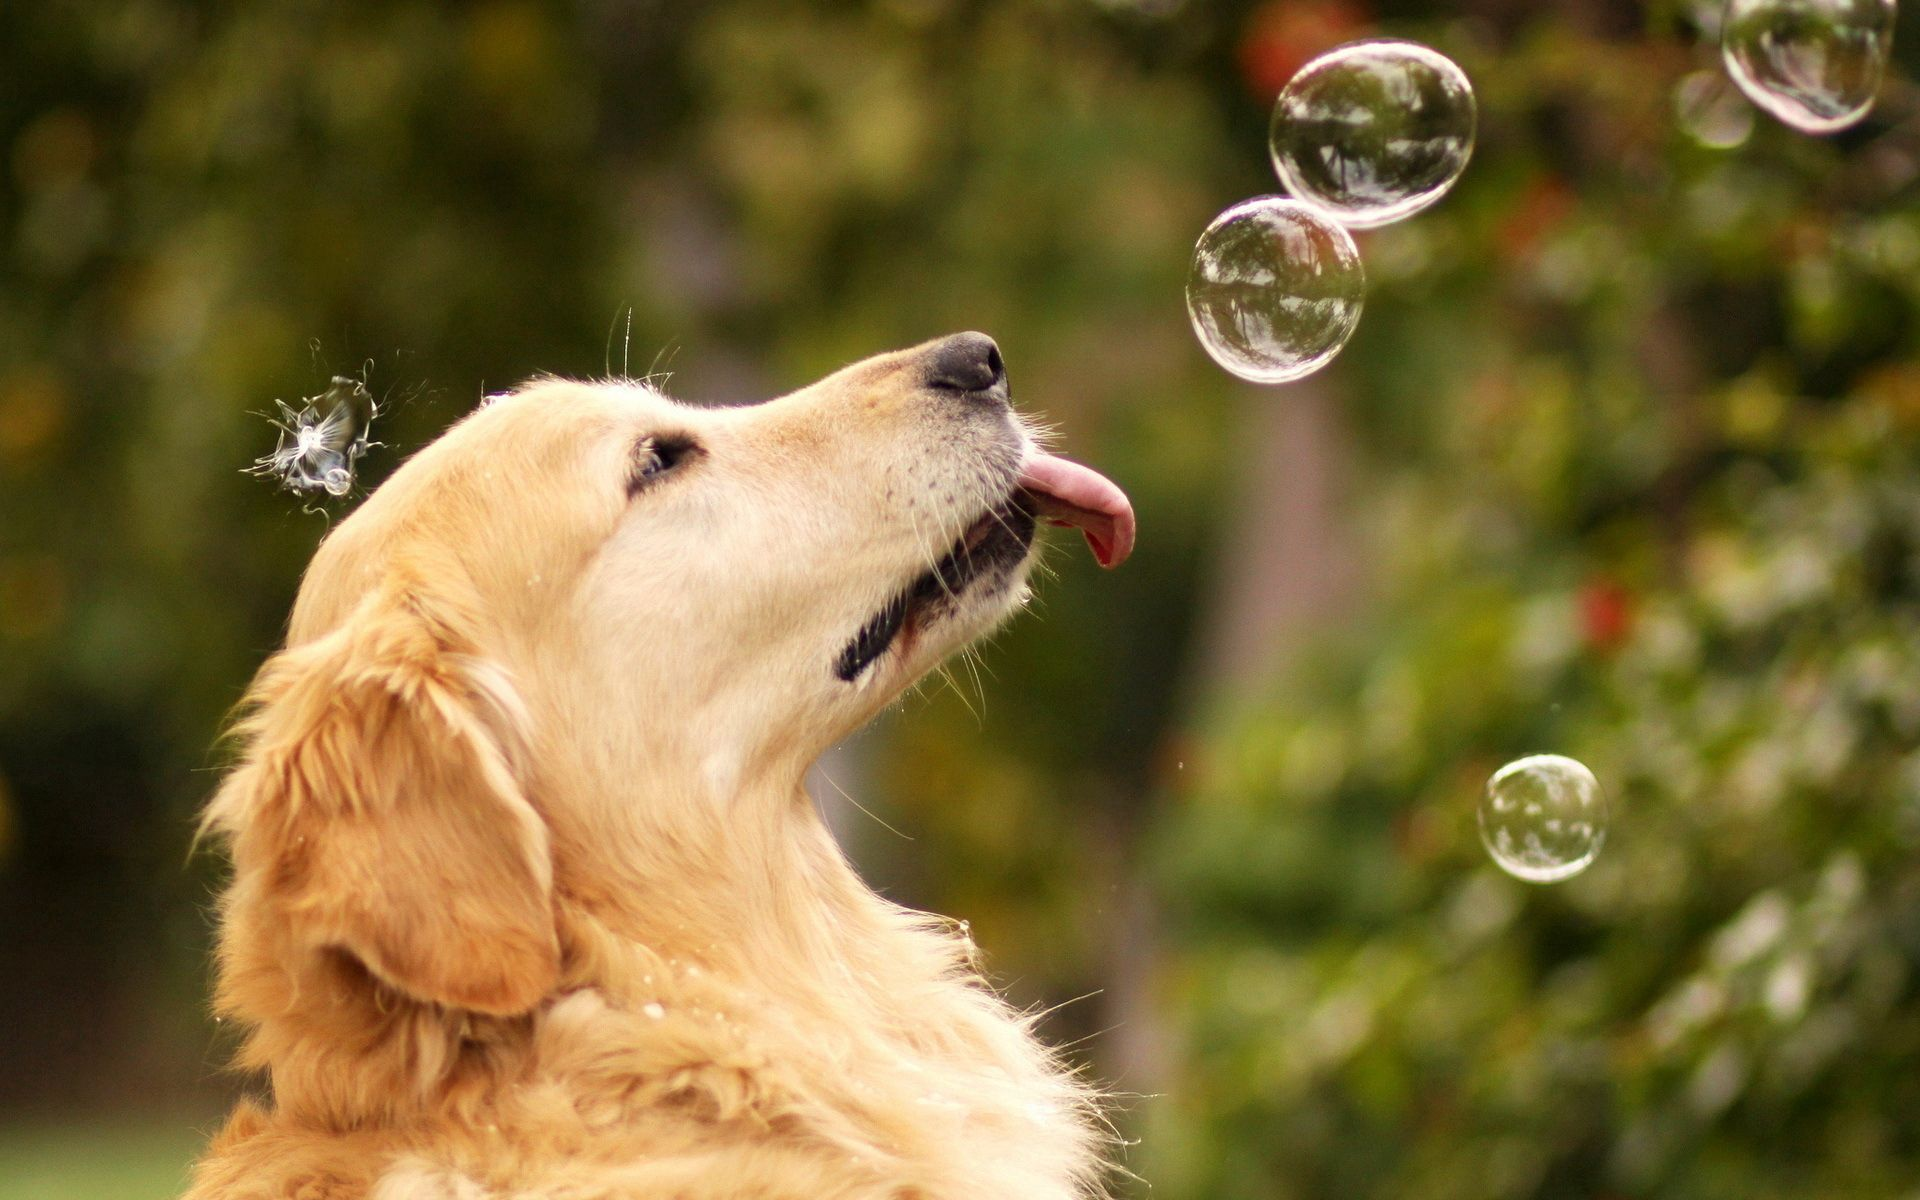 141346 download wallpaper Animals, Dog, Summer, Bubbles screensavers and pictures for free